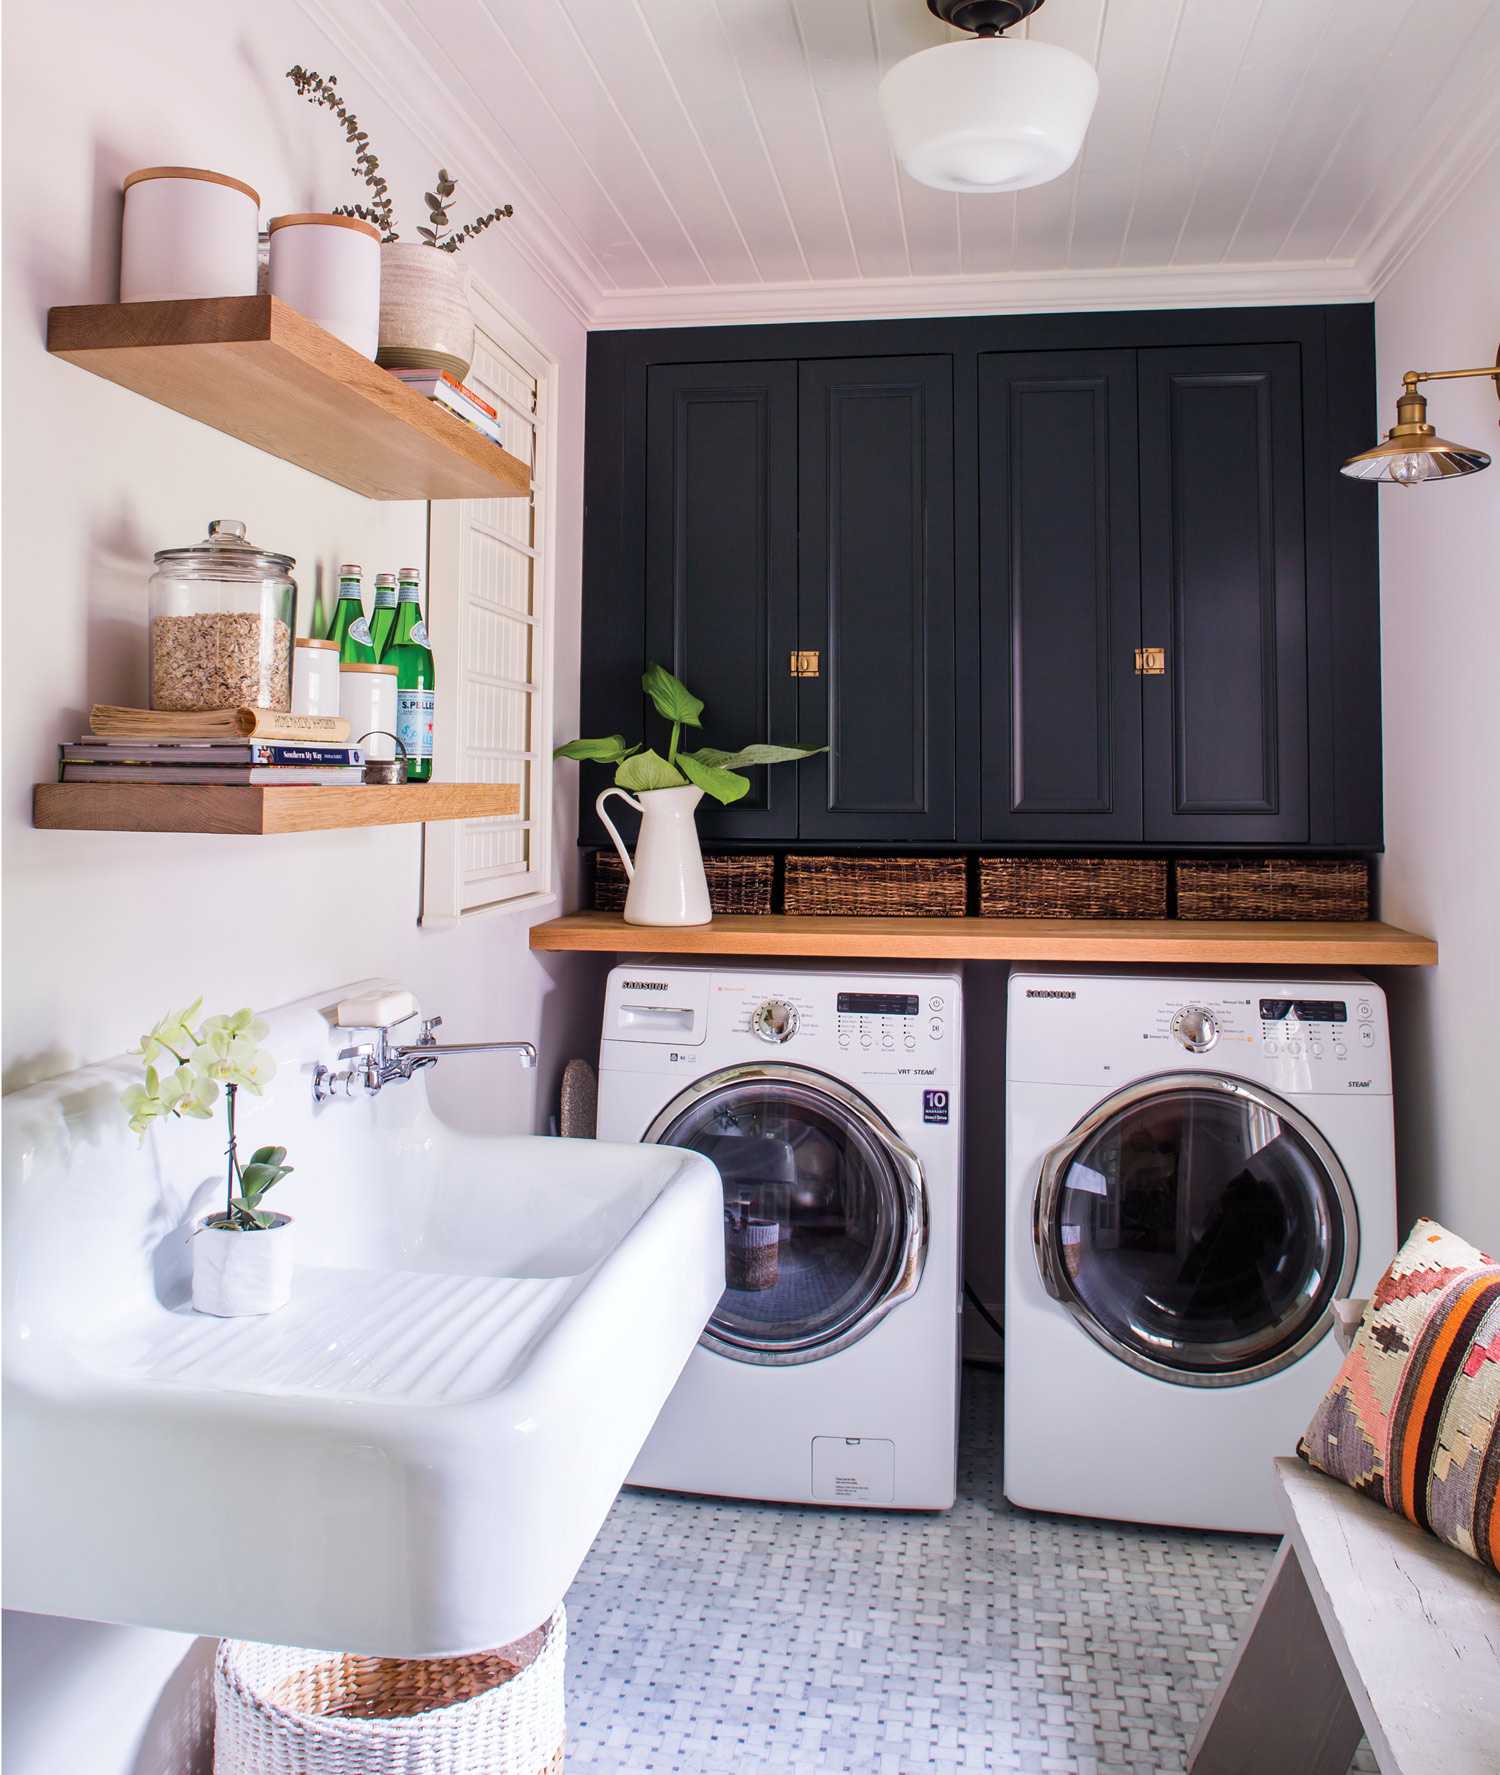 The vintage-style laundry sink proved pricey but useful.